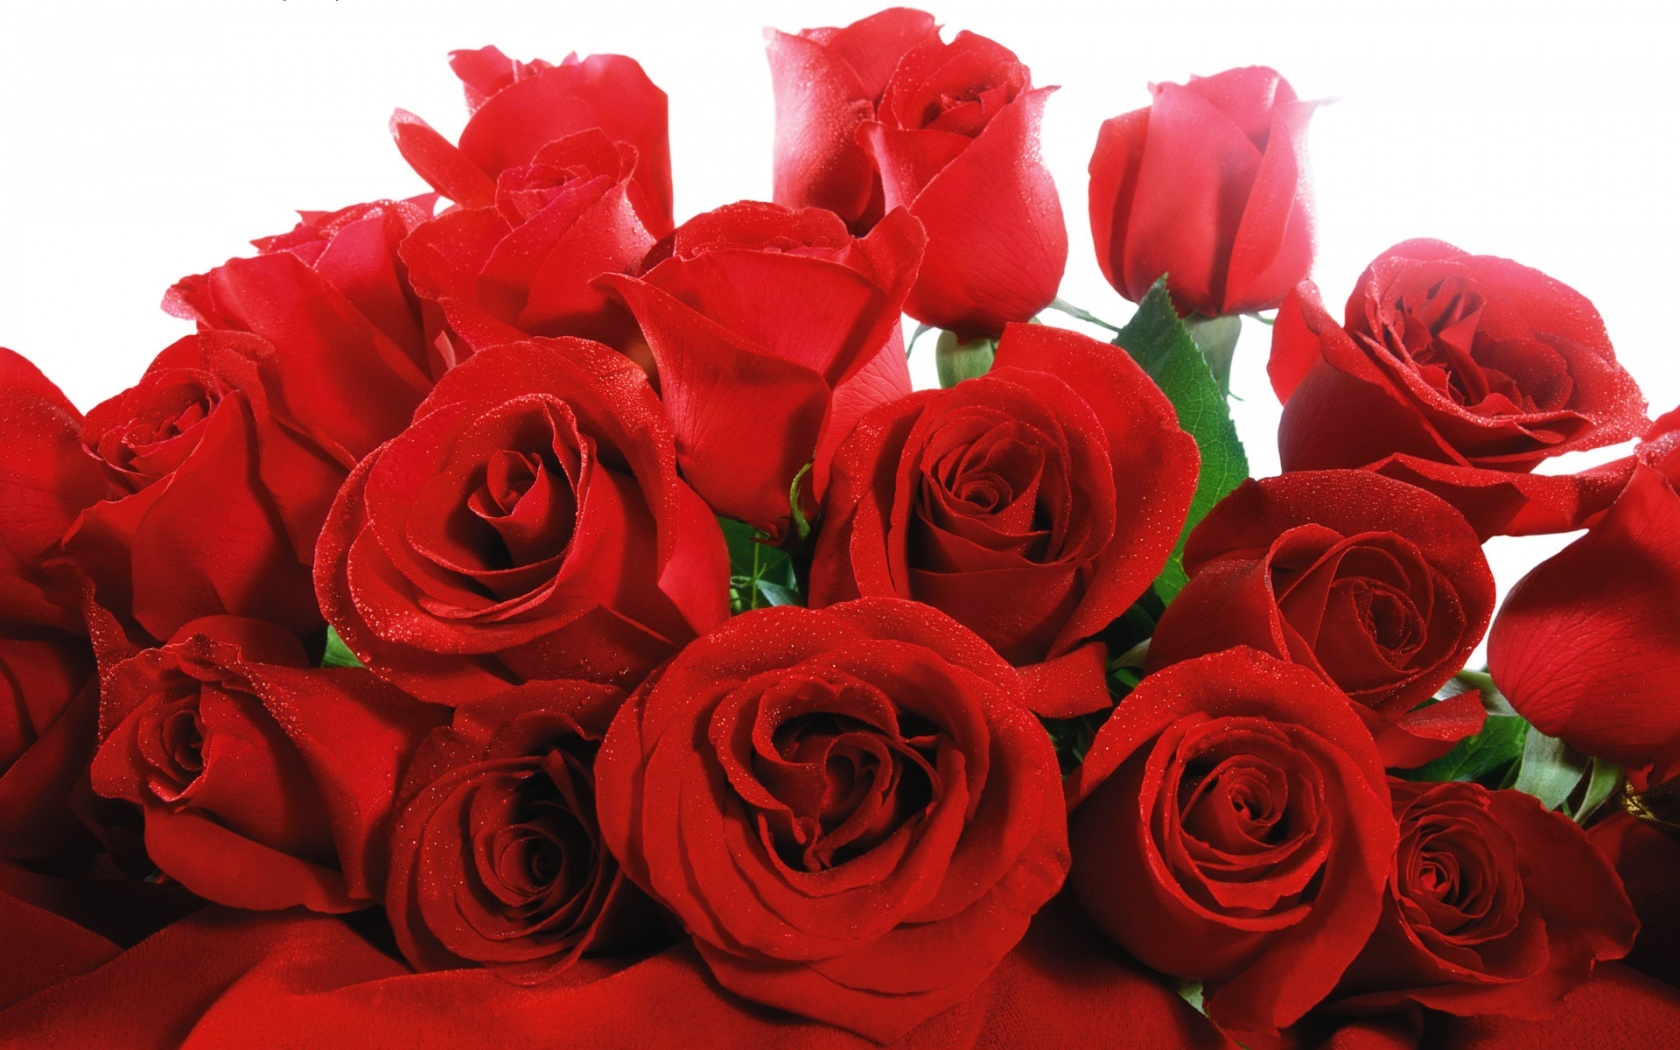 Lovely Red Roses 457.77 Kb